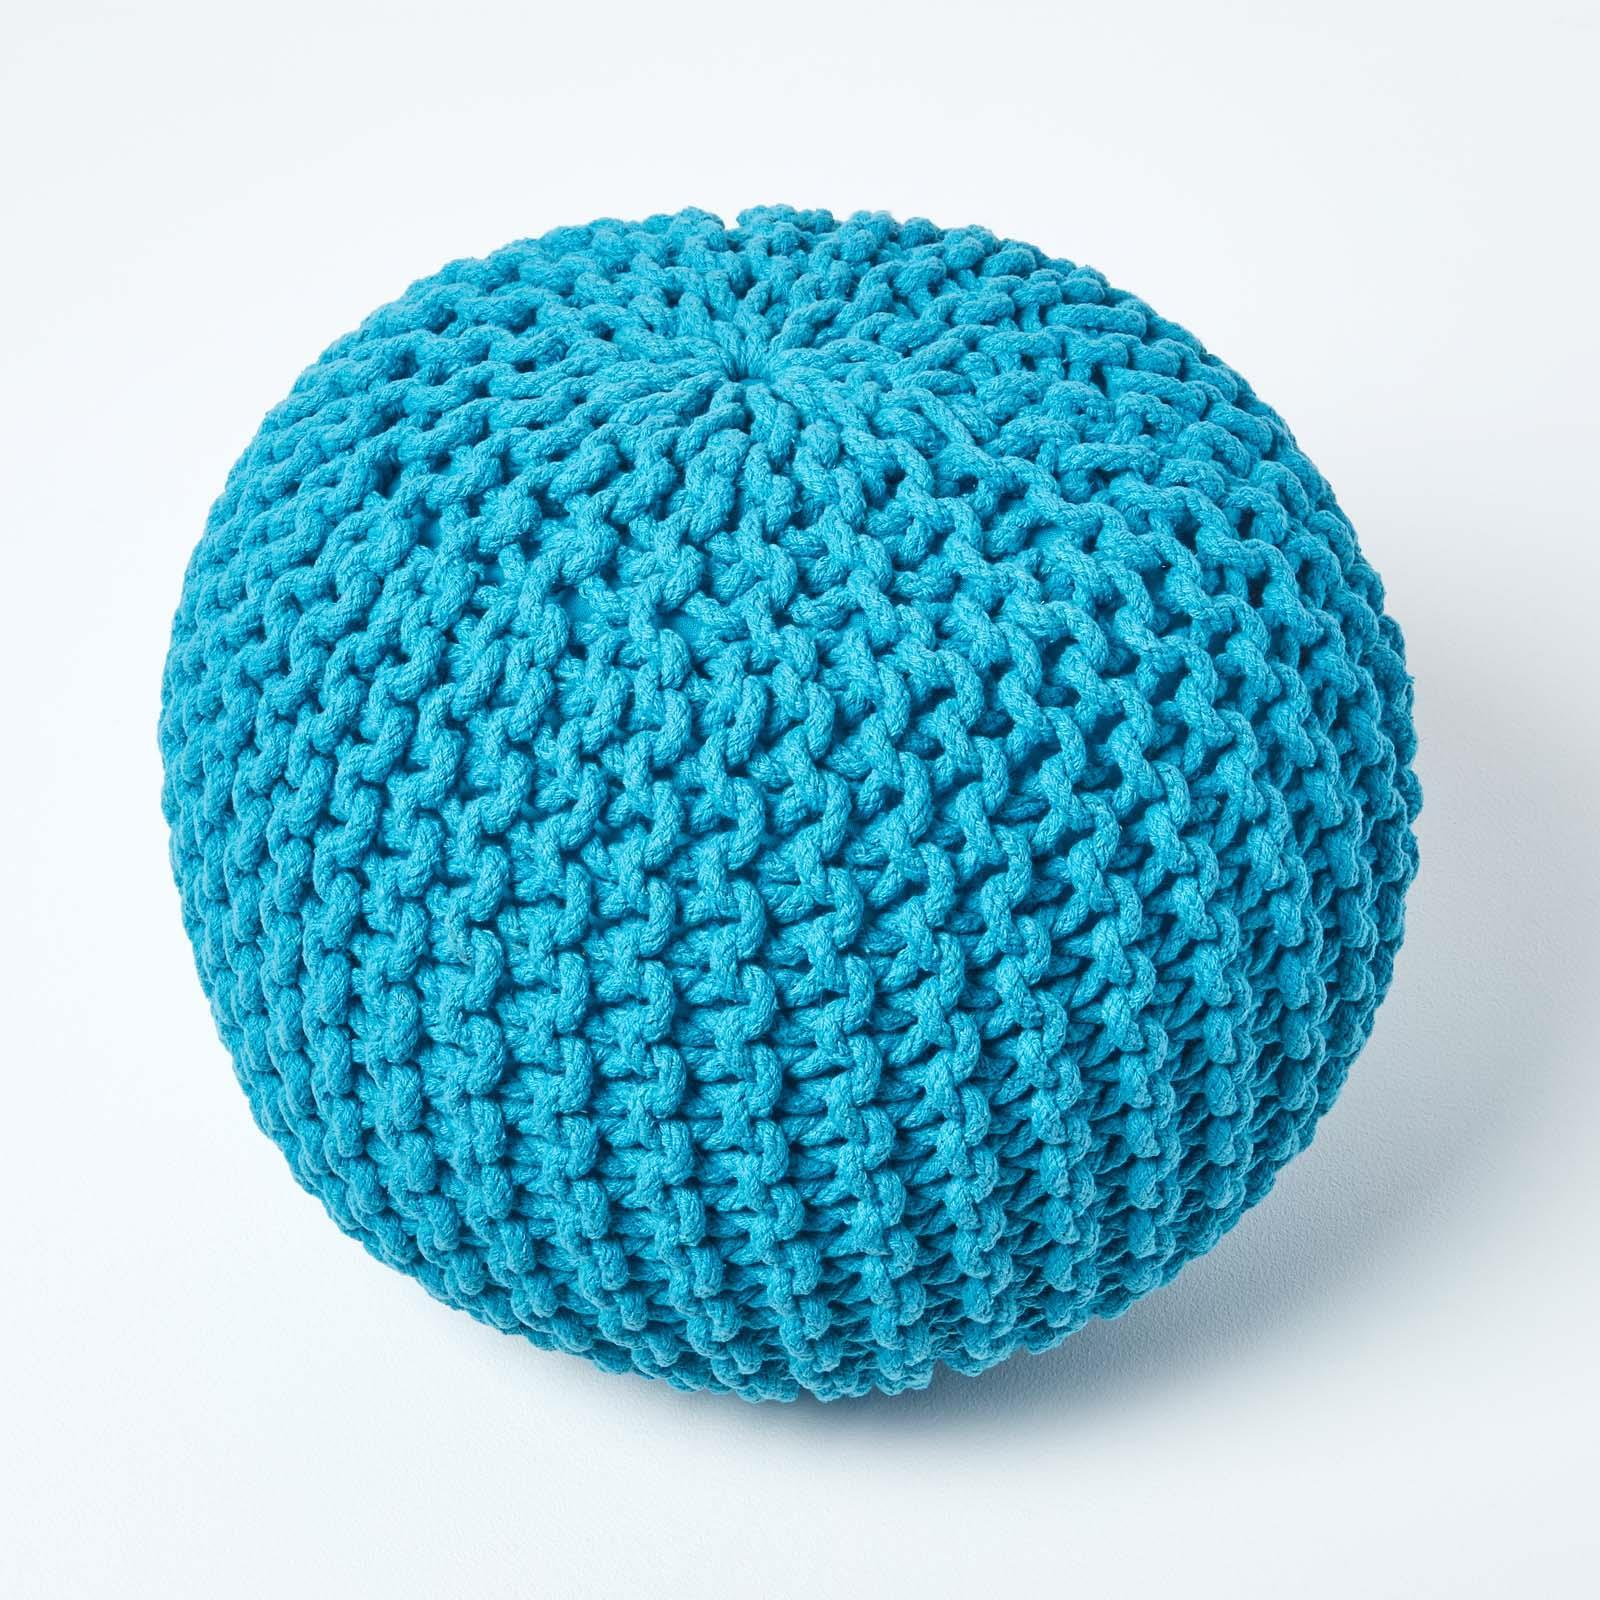 Hand-Knitted-100-Cotton-Pouffes-Round-Sphere-Or-Cube-Square-Chunky-Footstools thumbnail 188